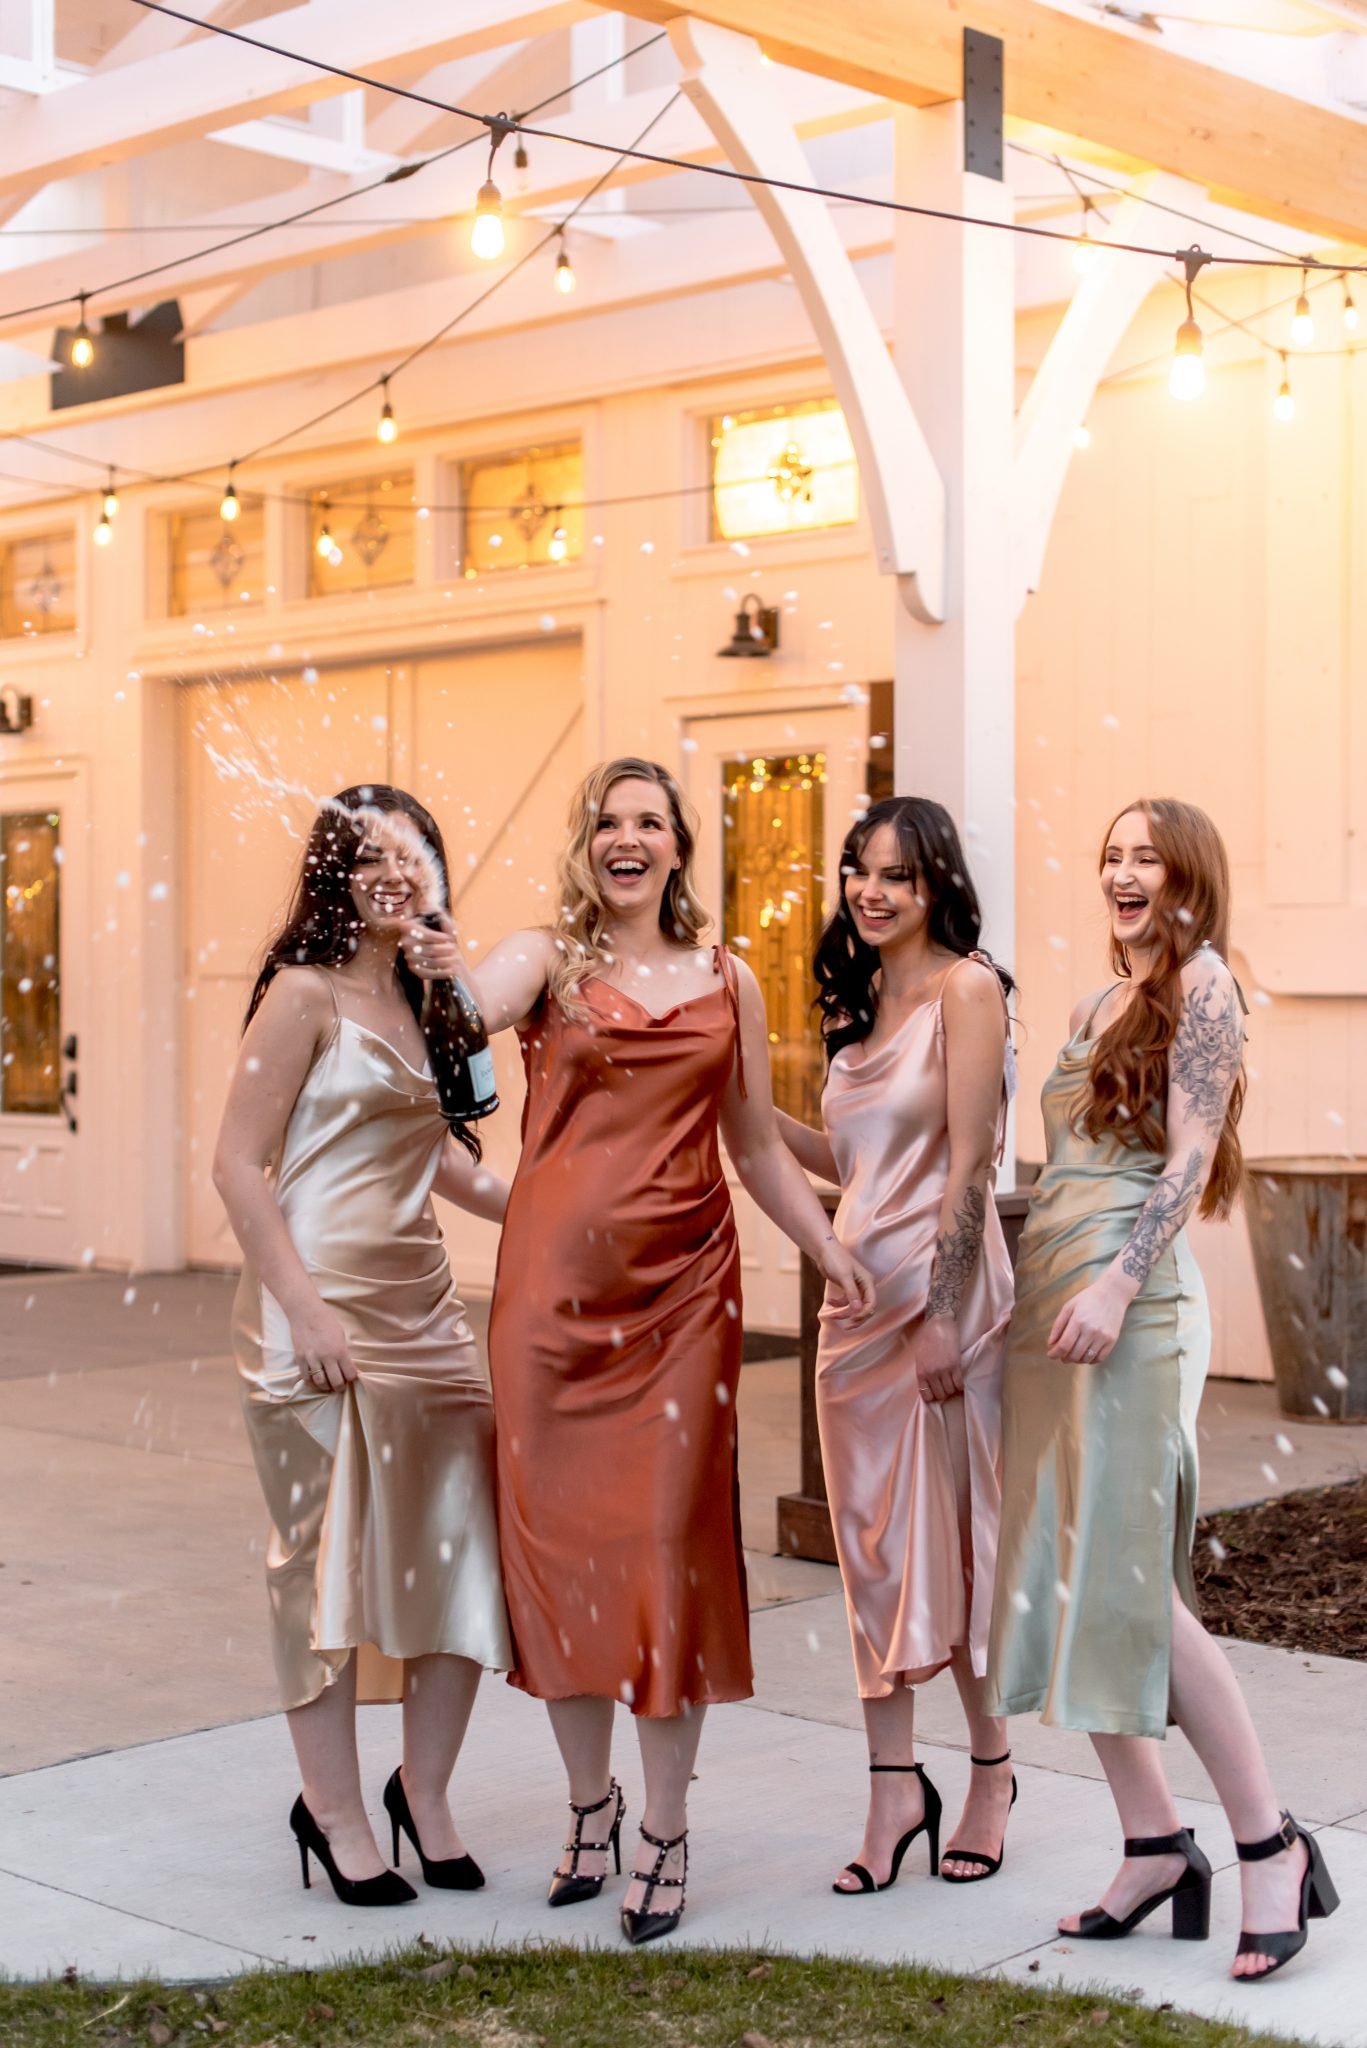 Bridesmaids pop a bottle of champagne on the patio at the Whitewood Barn, one of Alberta's premier luxury wedding venues